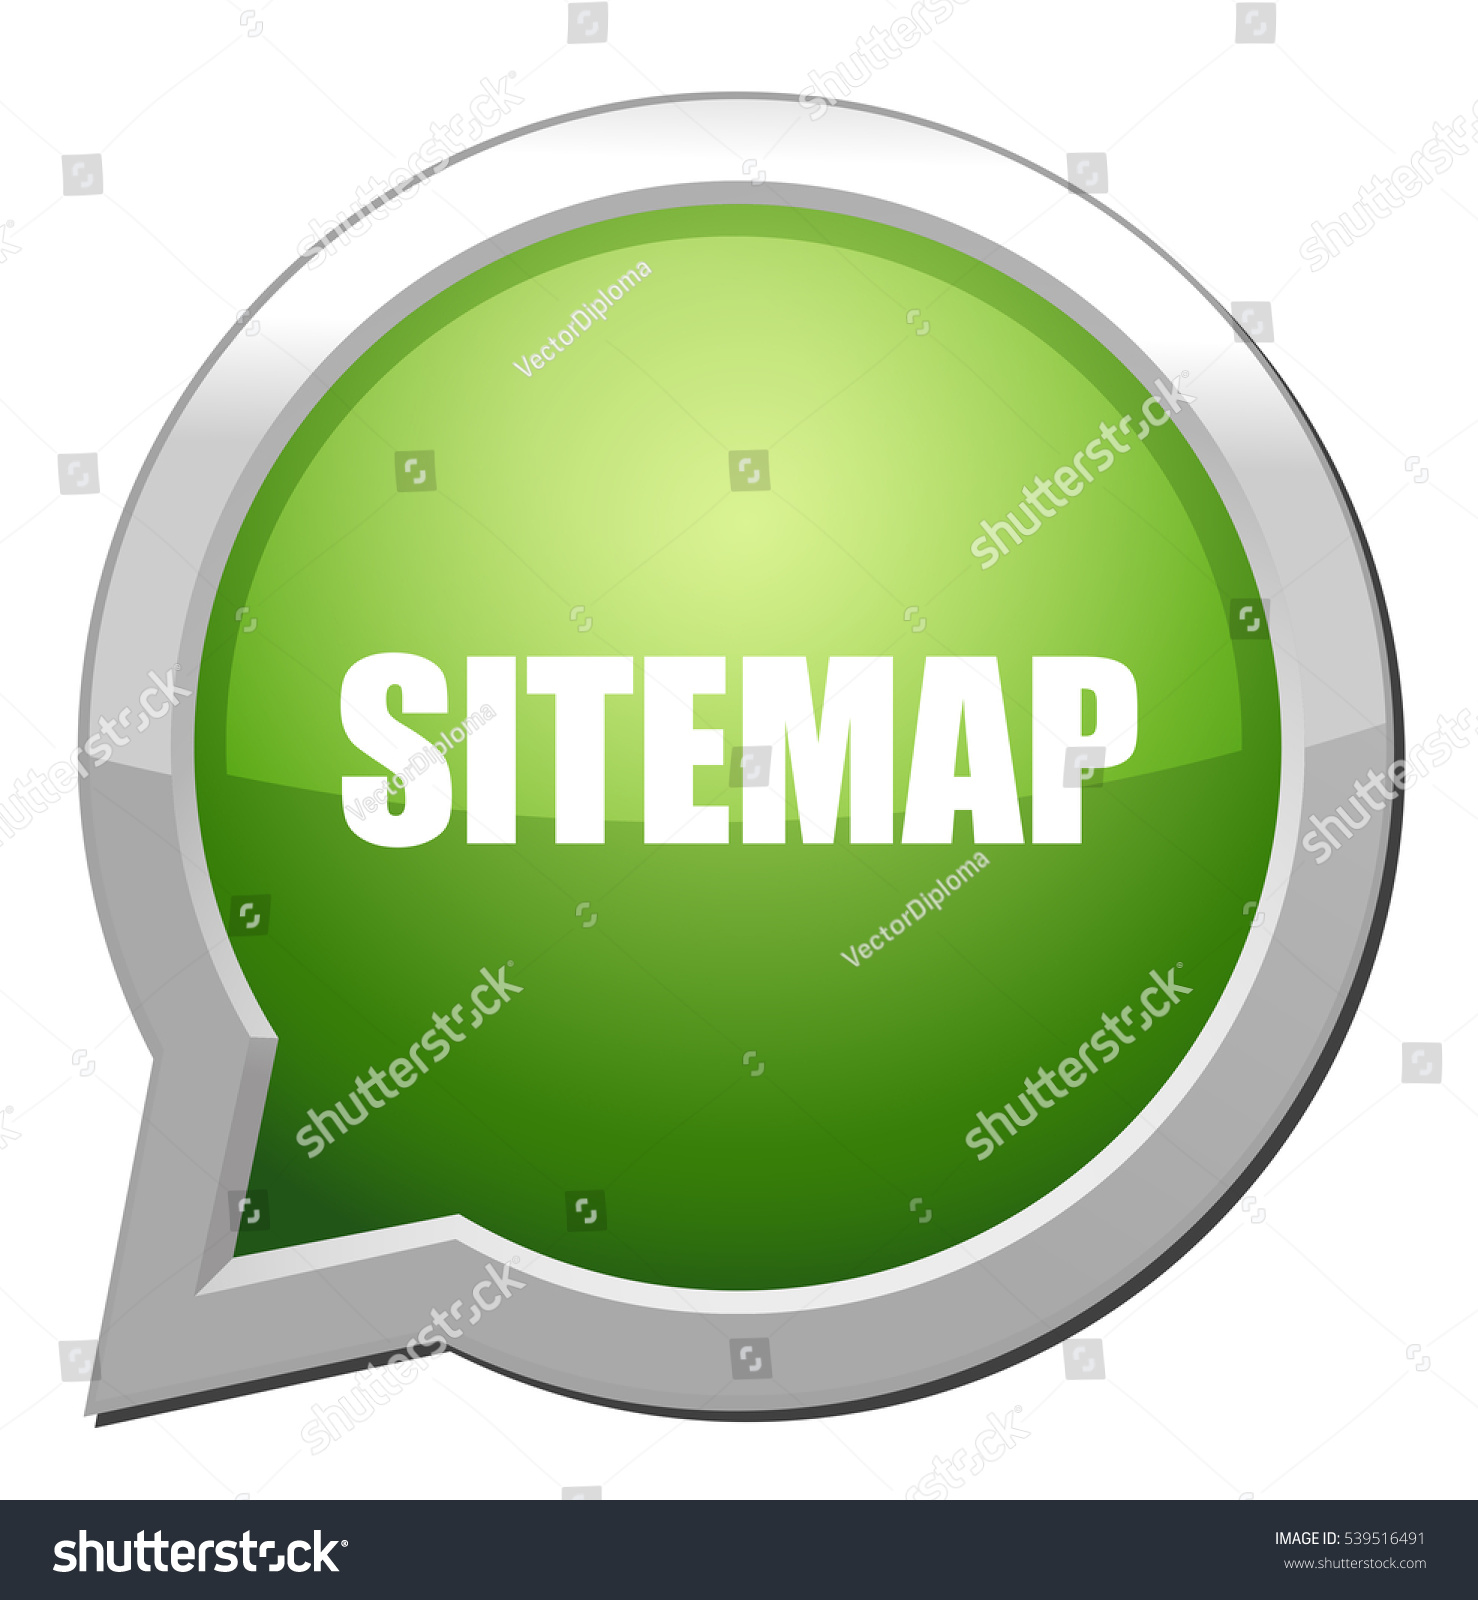 Sitemap: Sitemap Icon Stock Vector Illustration 539516491 : Shutterstock